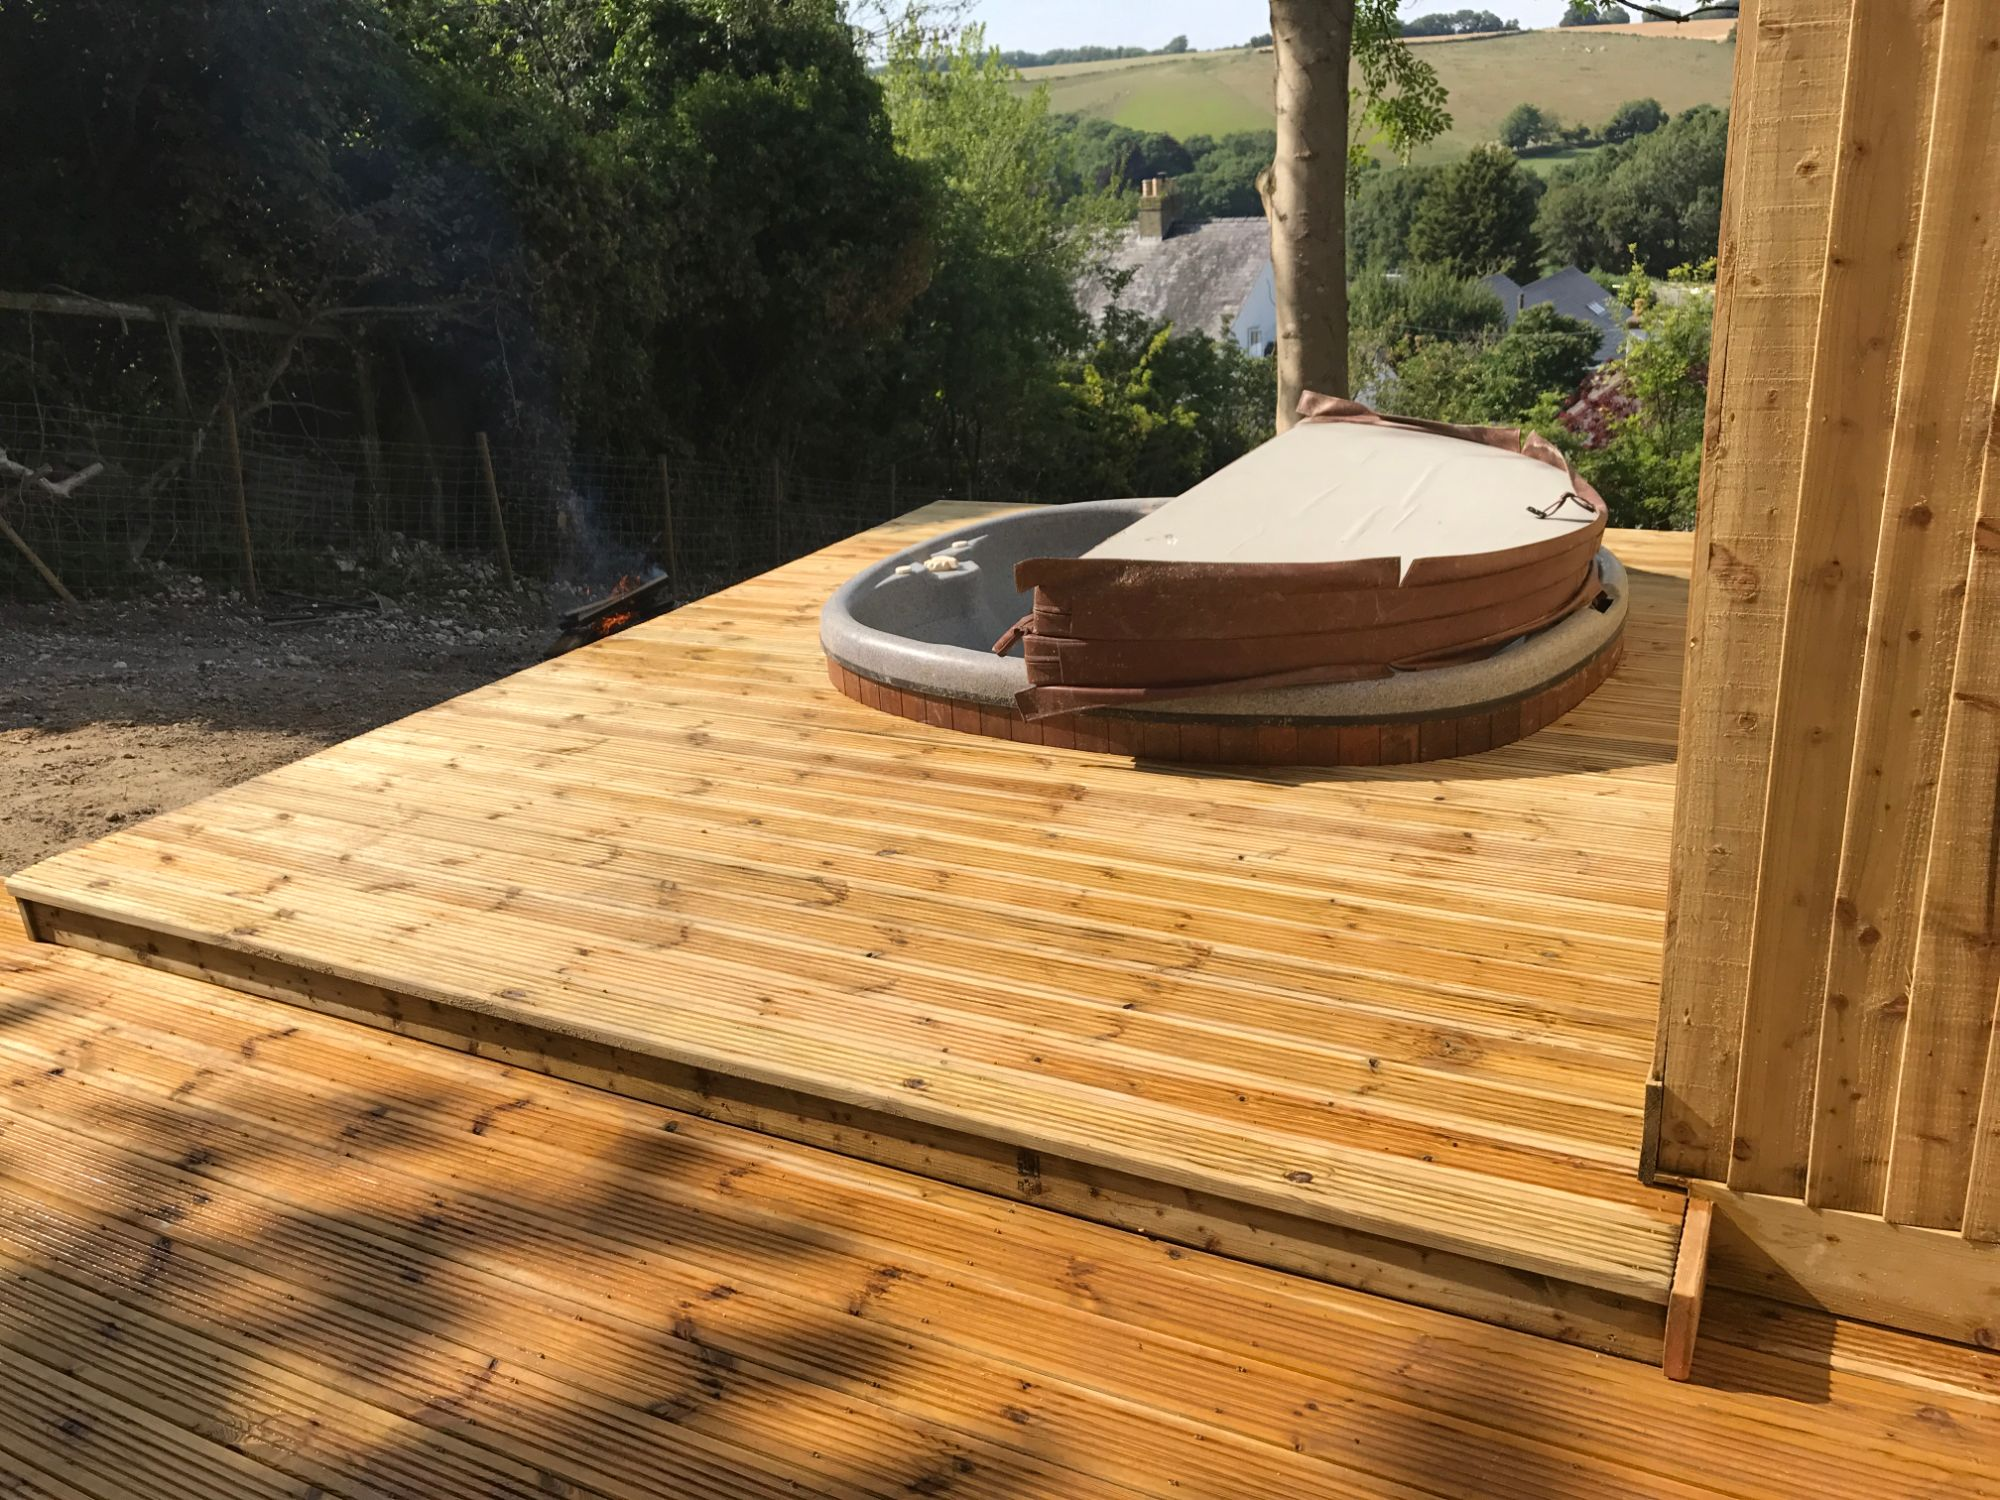 Deck with sunken hot tub